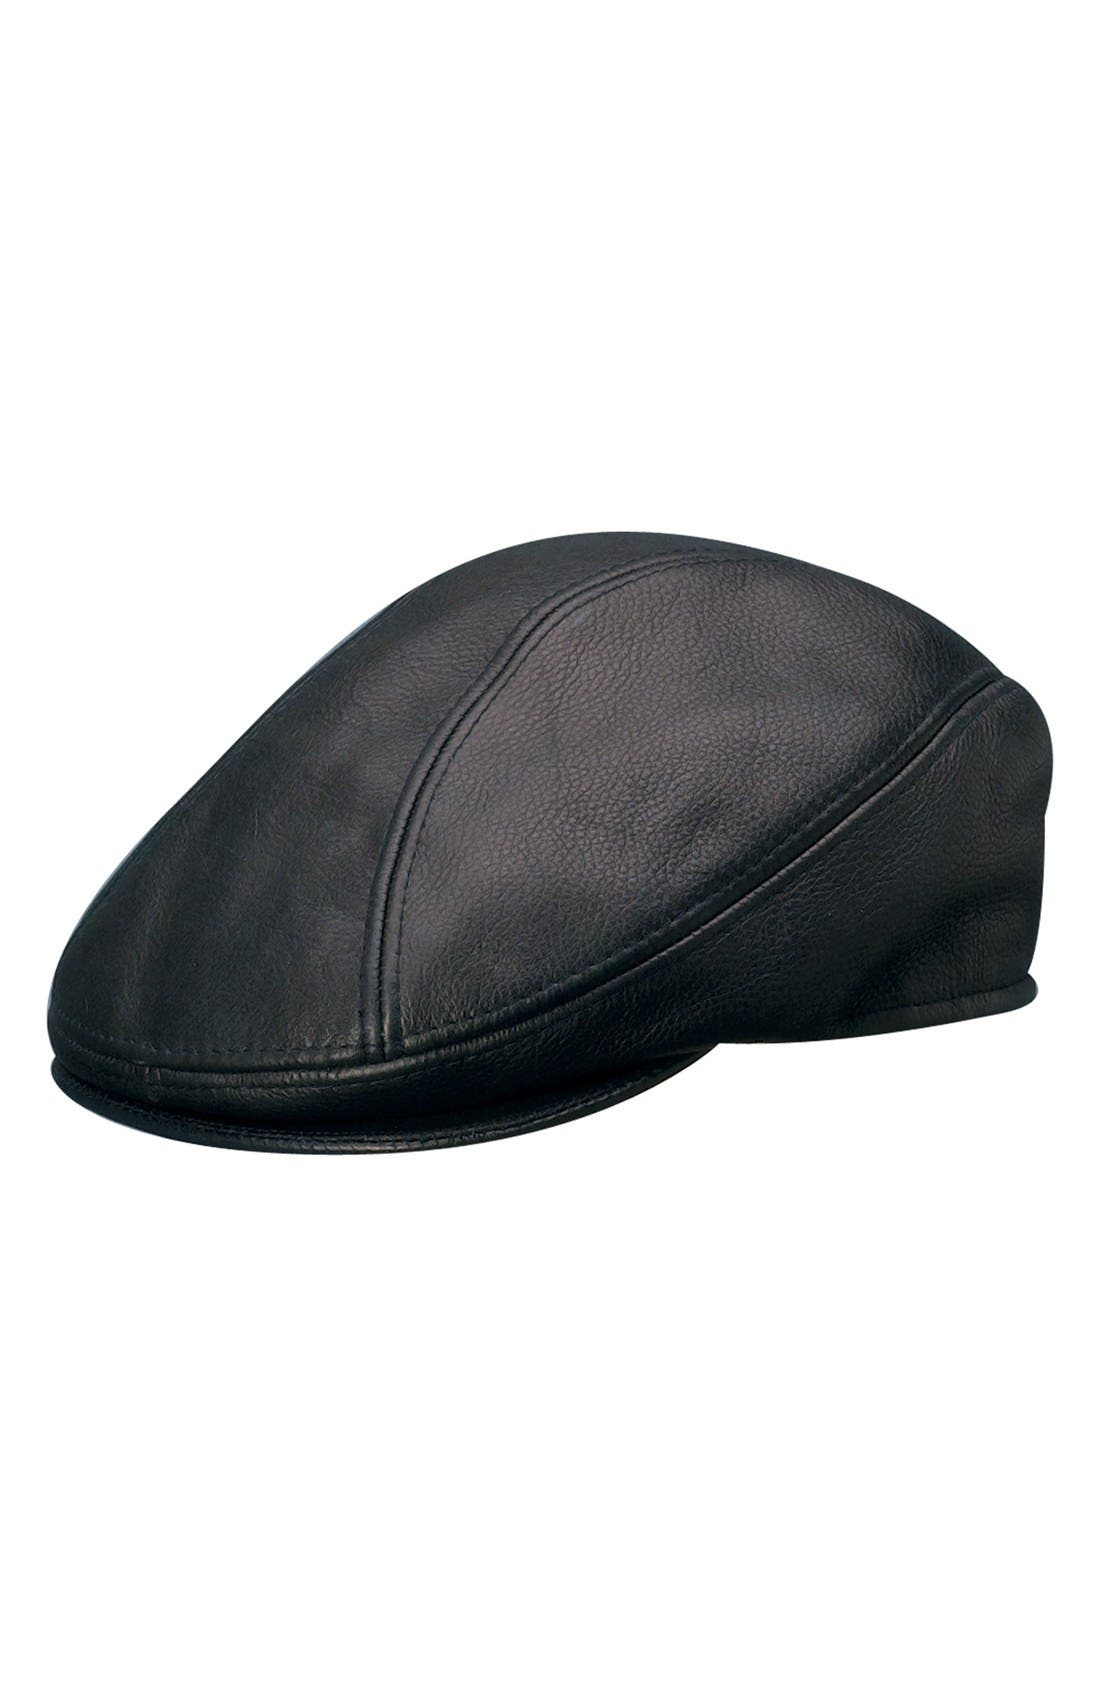 Alternate Image 1 Selected - Stetson Leather Driving Cap